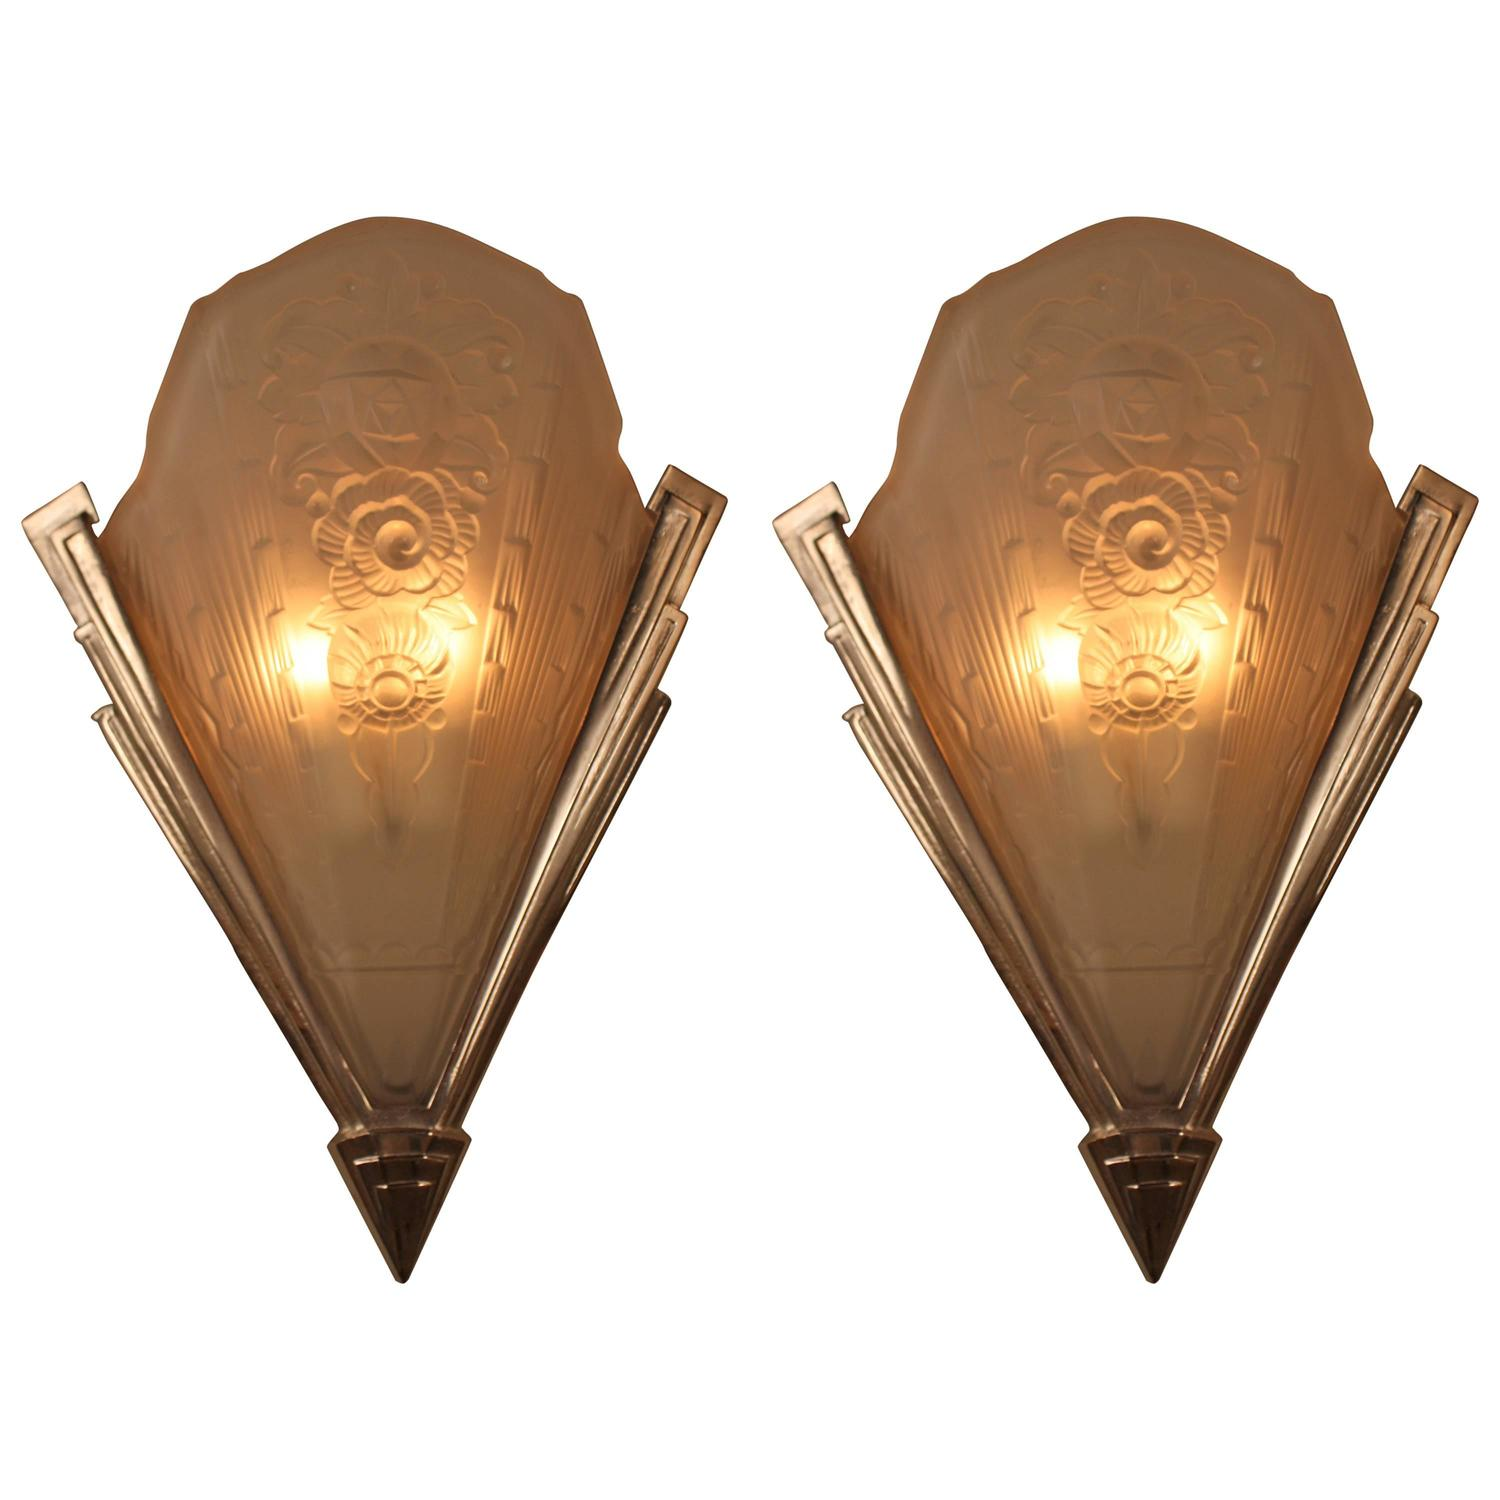 French Art Deco Wall Sconces : Pair of Large French Art Deco Wall Sconces at 1stdibs